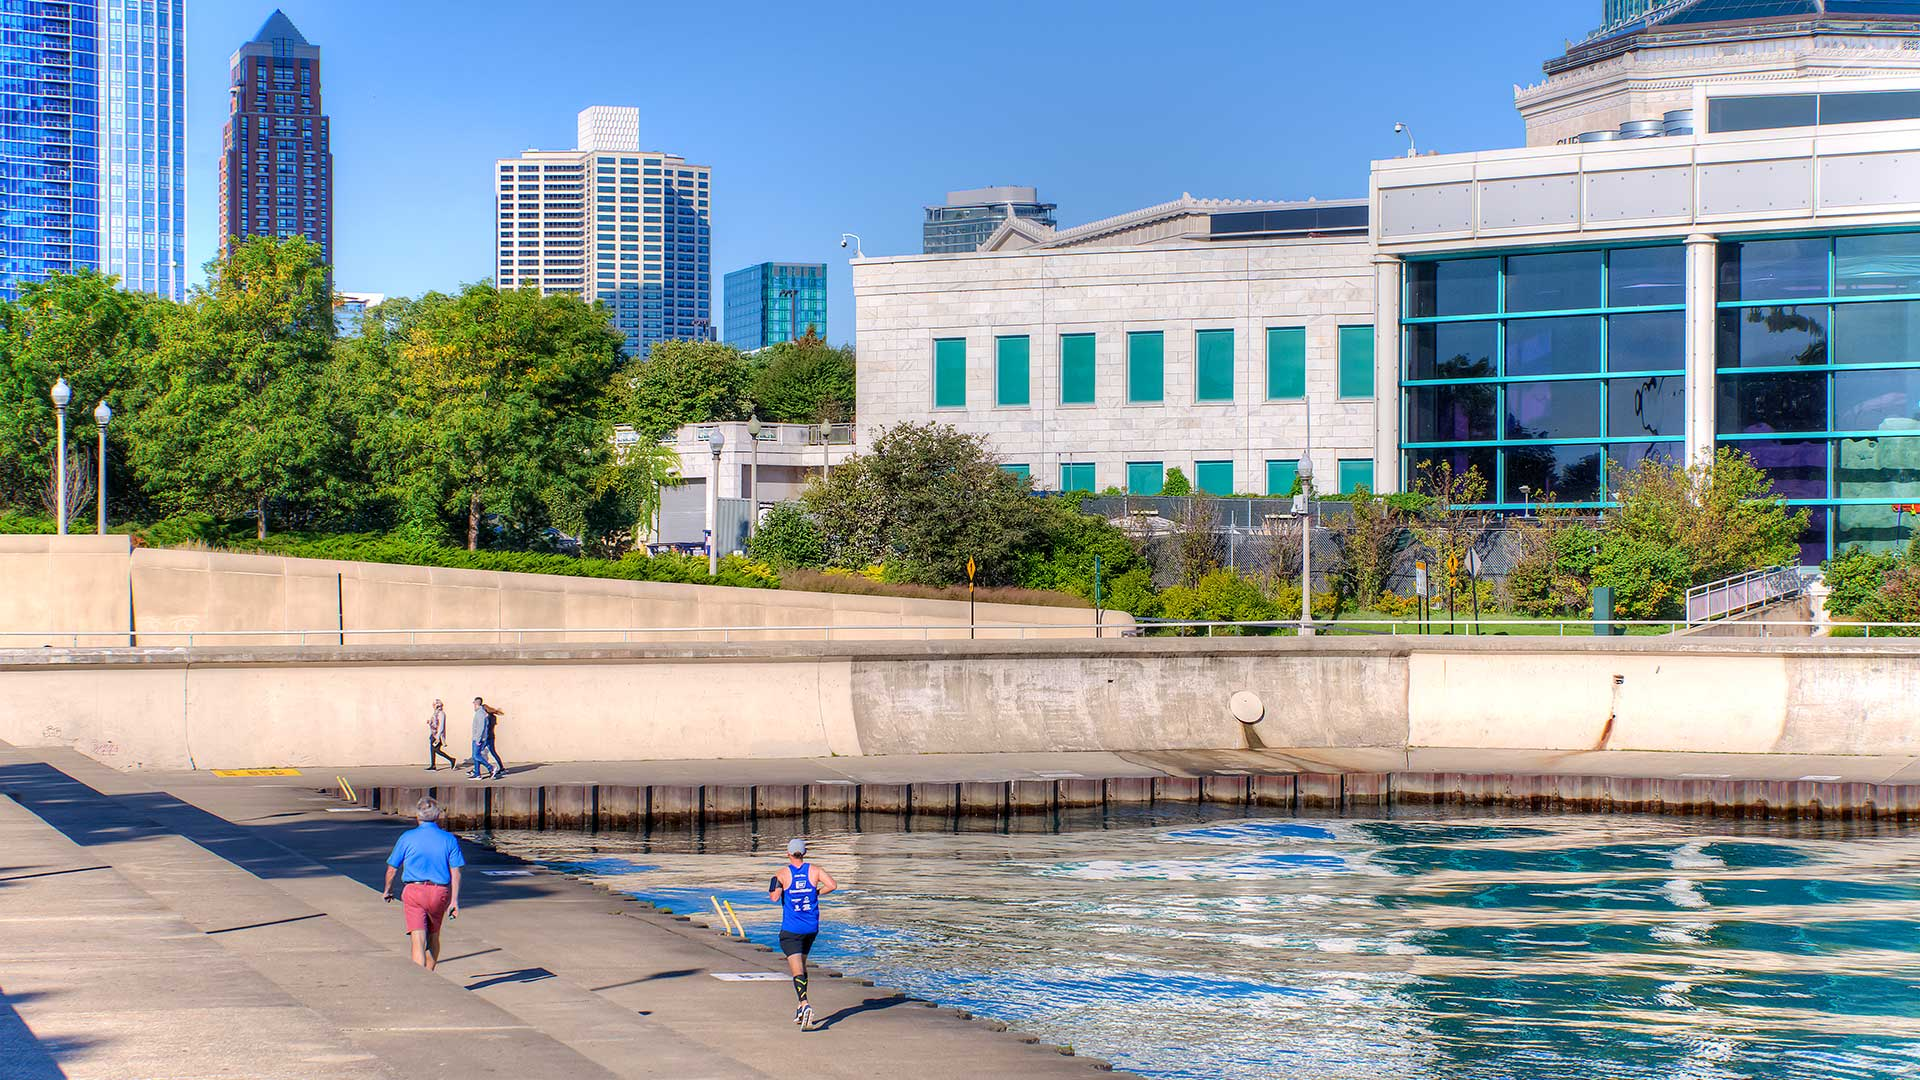 The Shedd Aquarium along the Lake Michigan shoreline. Trees and the Eleven Thirty apartment tower are seen in the background.